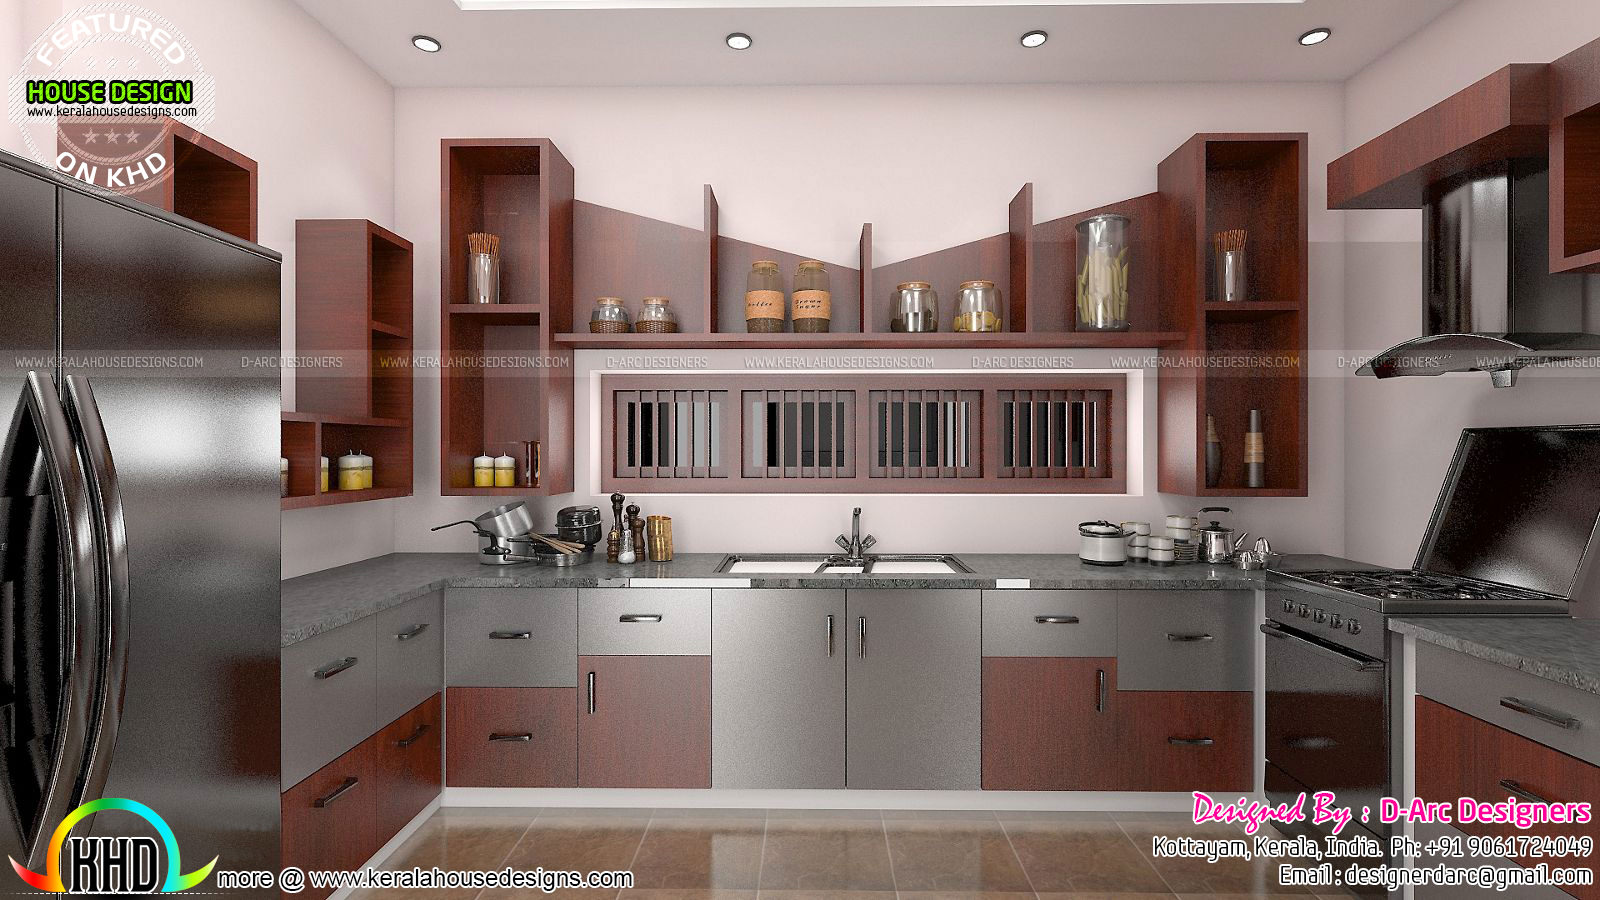 2016 modern interiors design trends kerala home design and floor plans - Modern house interior design kitchen ...